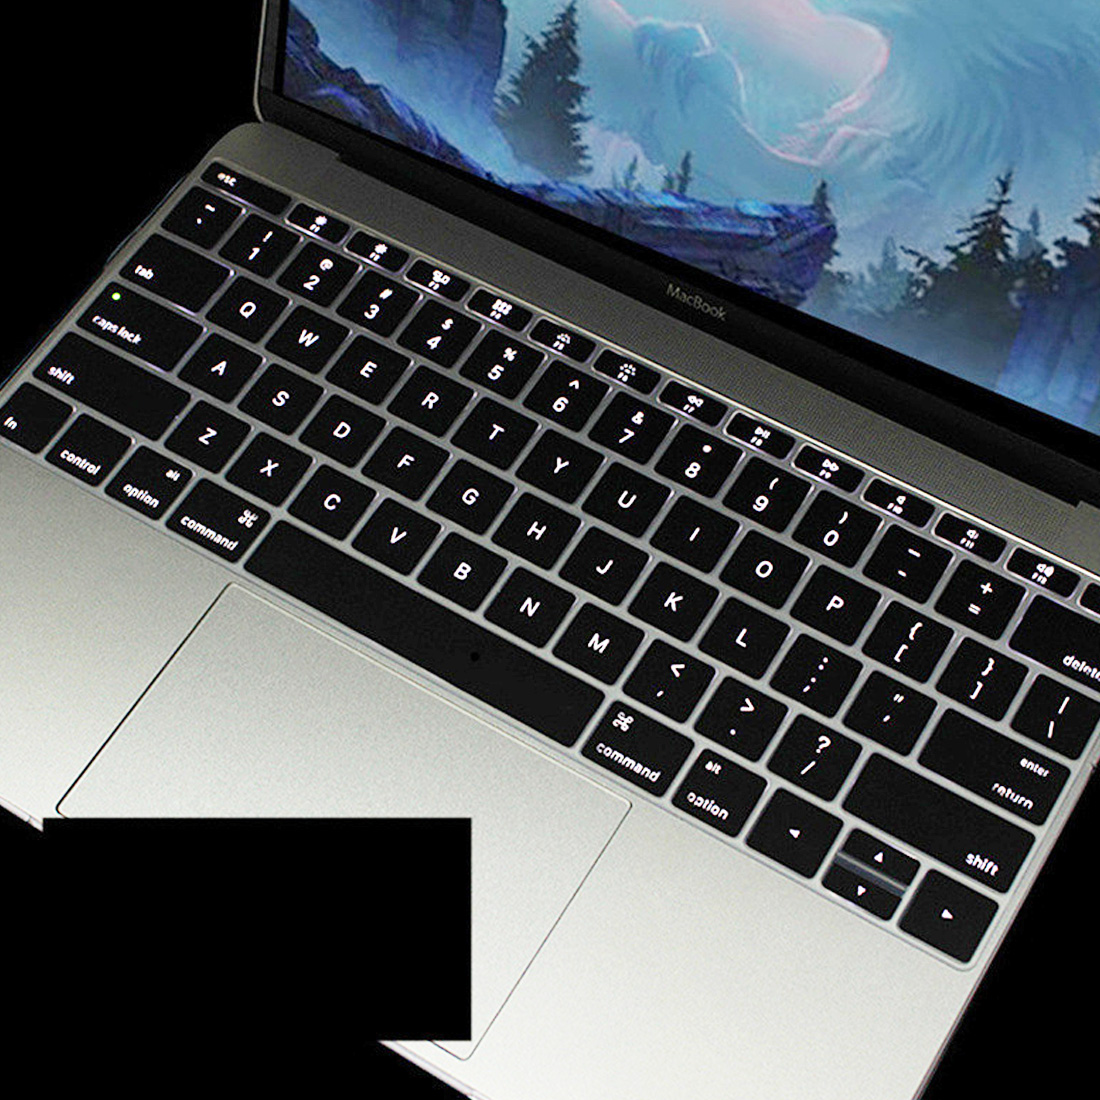 Waterproof Silicone Keyboard Cover Protector Skin For Macbook Soft Keyboard  Stickers Covers For Laptops Typing Keyboard Covers From Newgema, &Price